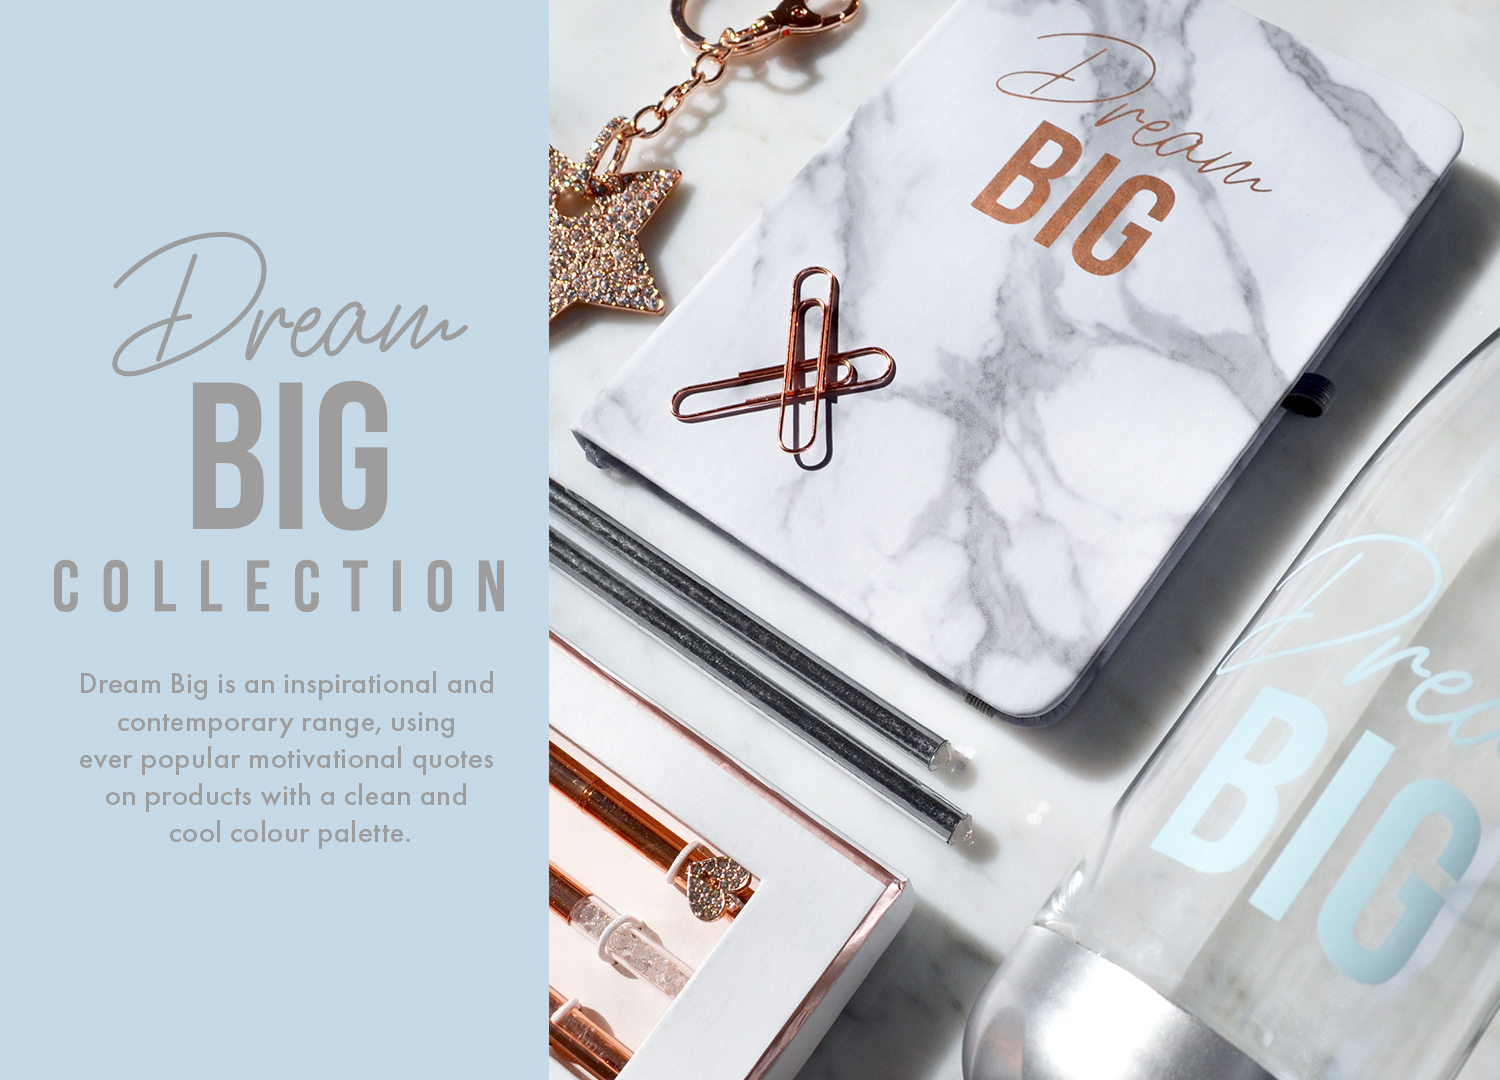 Dream Big Collection 2019.jpg